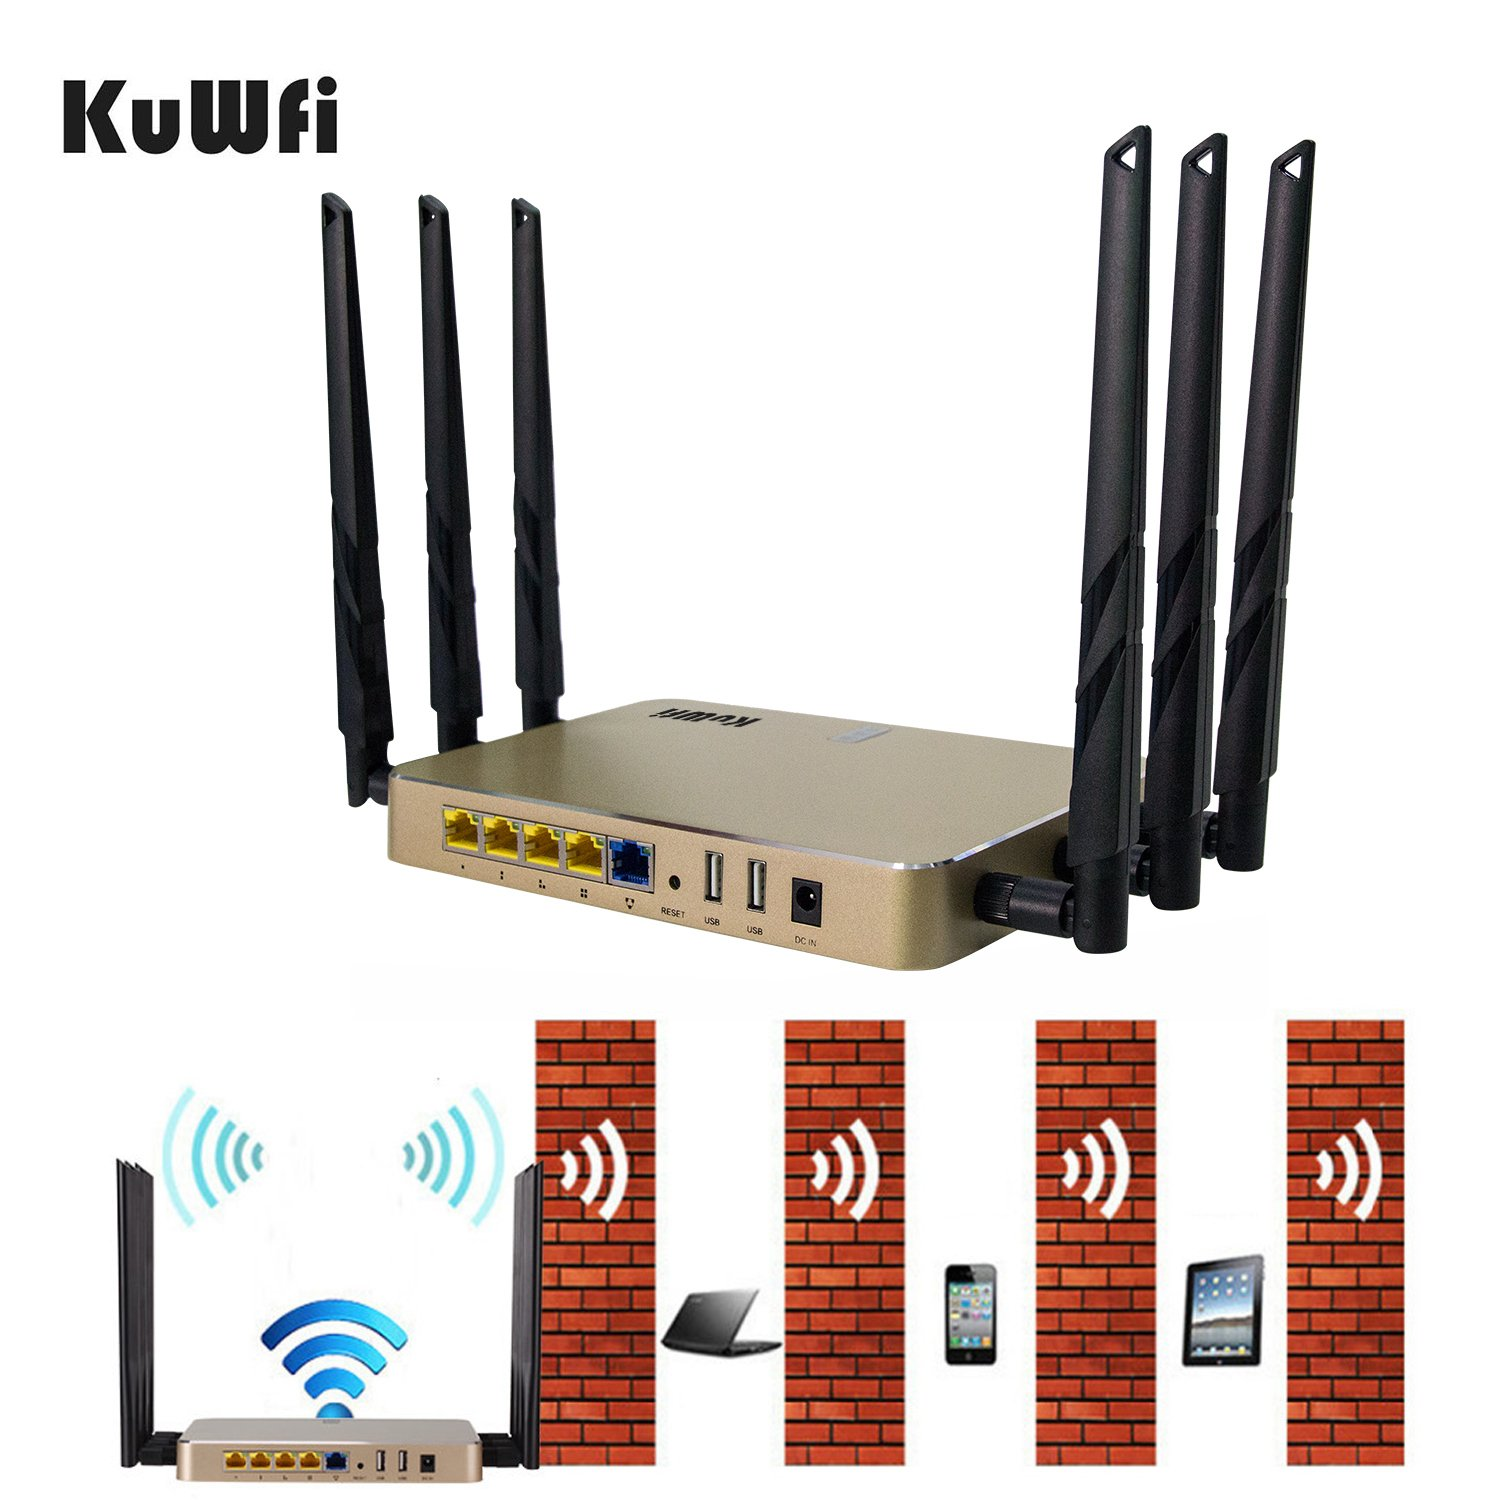 KuWFi High Power Wireless Gigabit Router, wireless Gigabit Access Point 802.11 ac router 1200Mbps Cover Long Area Support more than 100Users easy to Use Through walls 2000mW 128M DDR2 RAM for Home